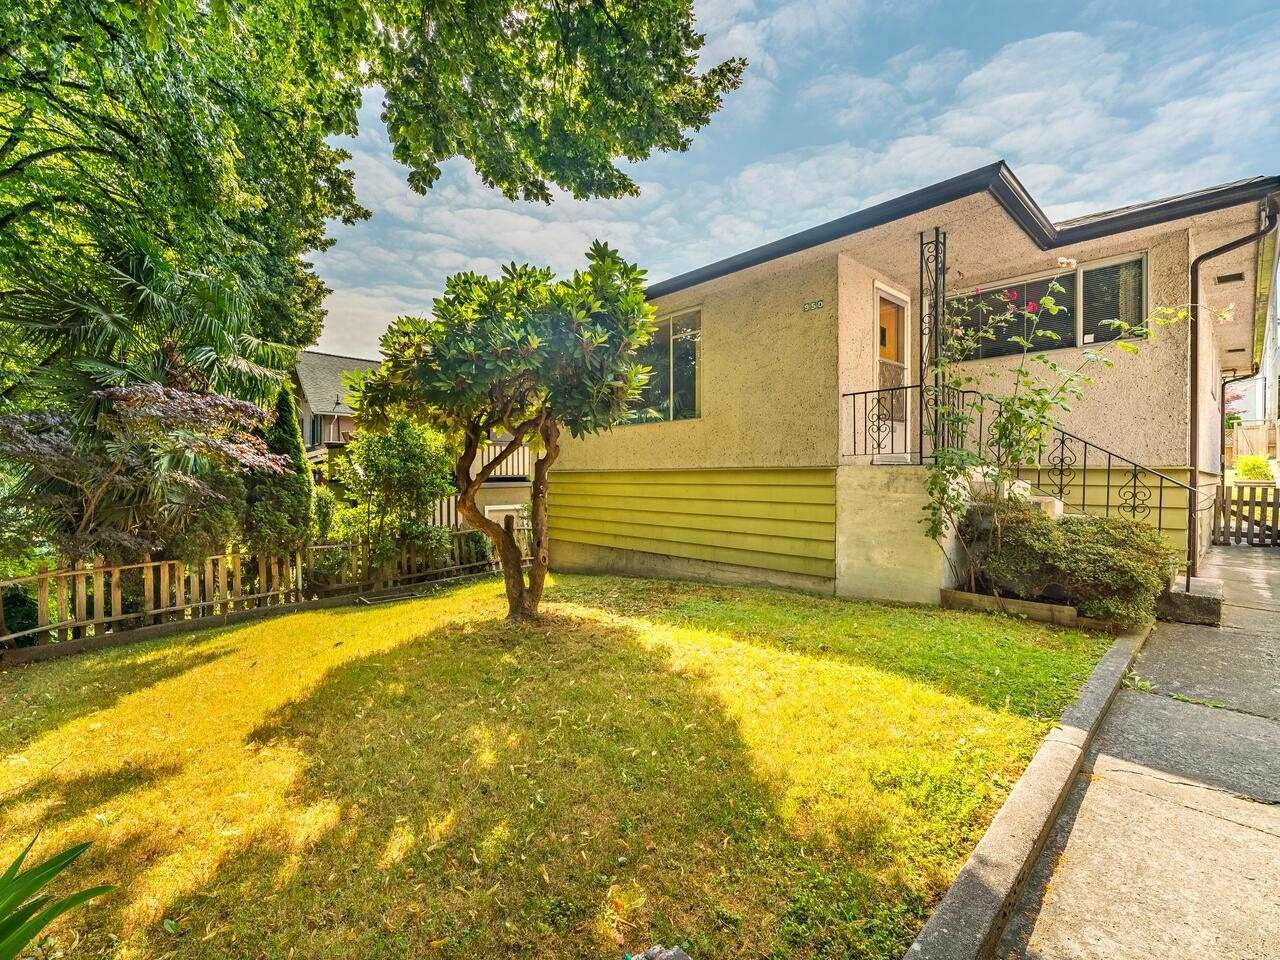 Main Photo: 950 E 17TH AVENUE in Vancouver: Fraser VE House for sale (Vancouver East)  : MLS®# R2601203